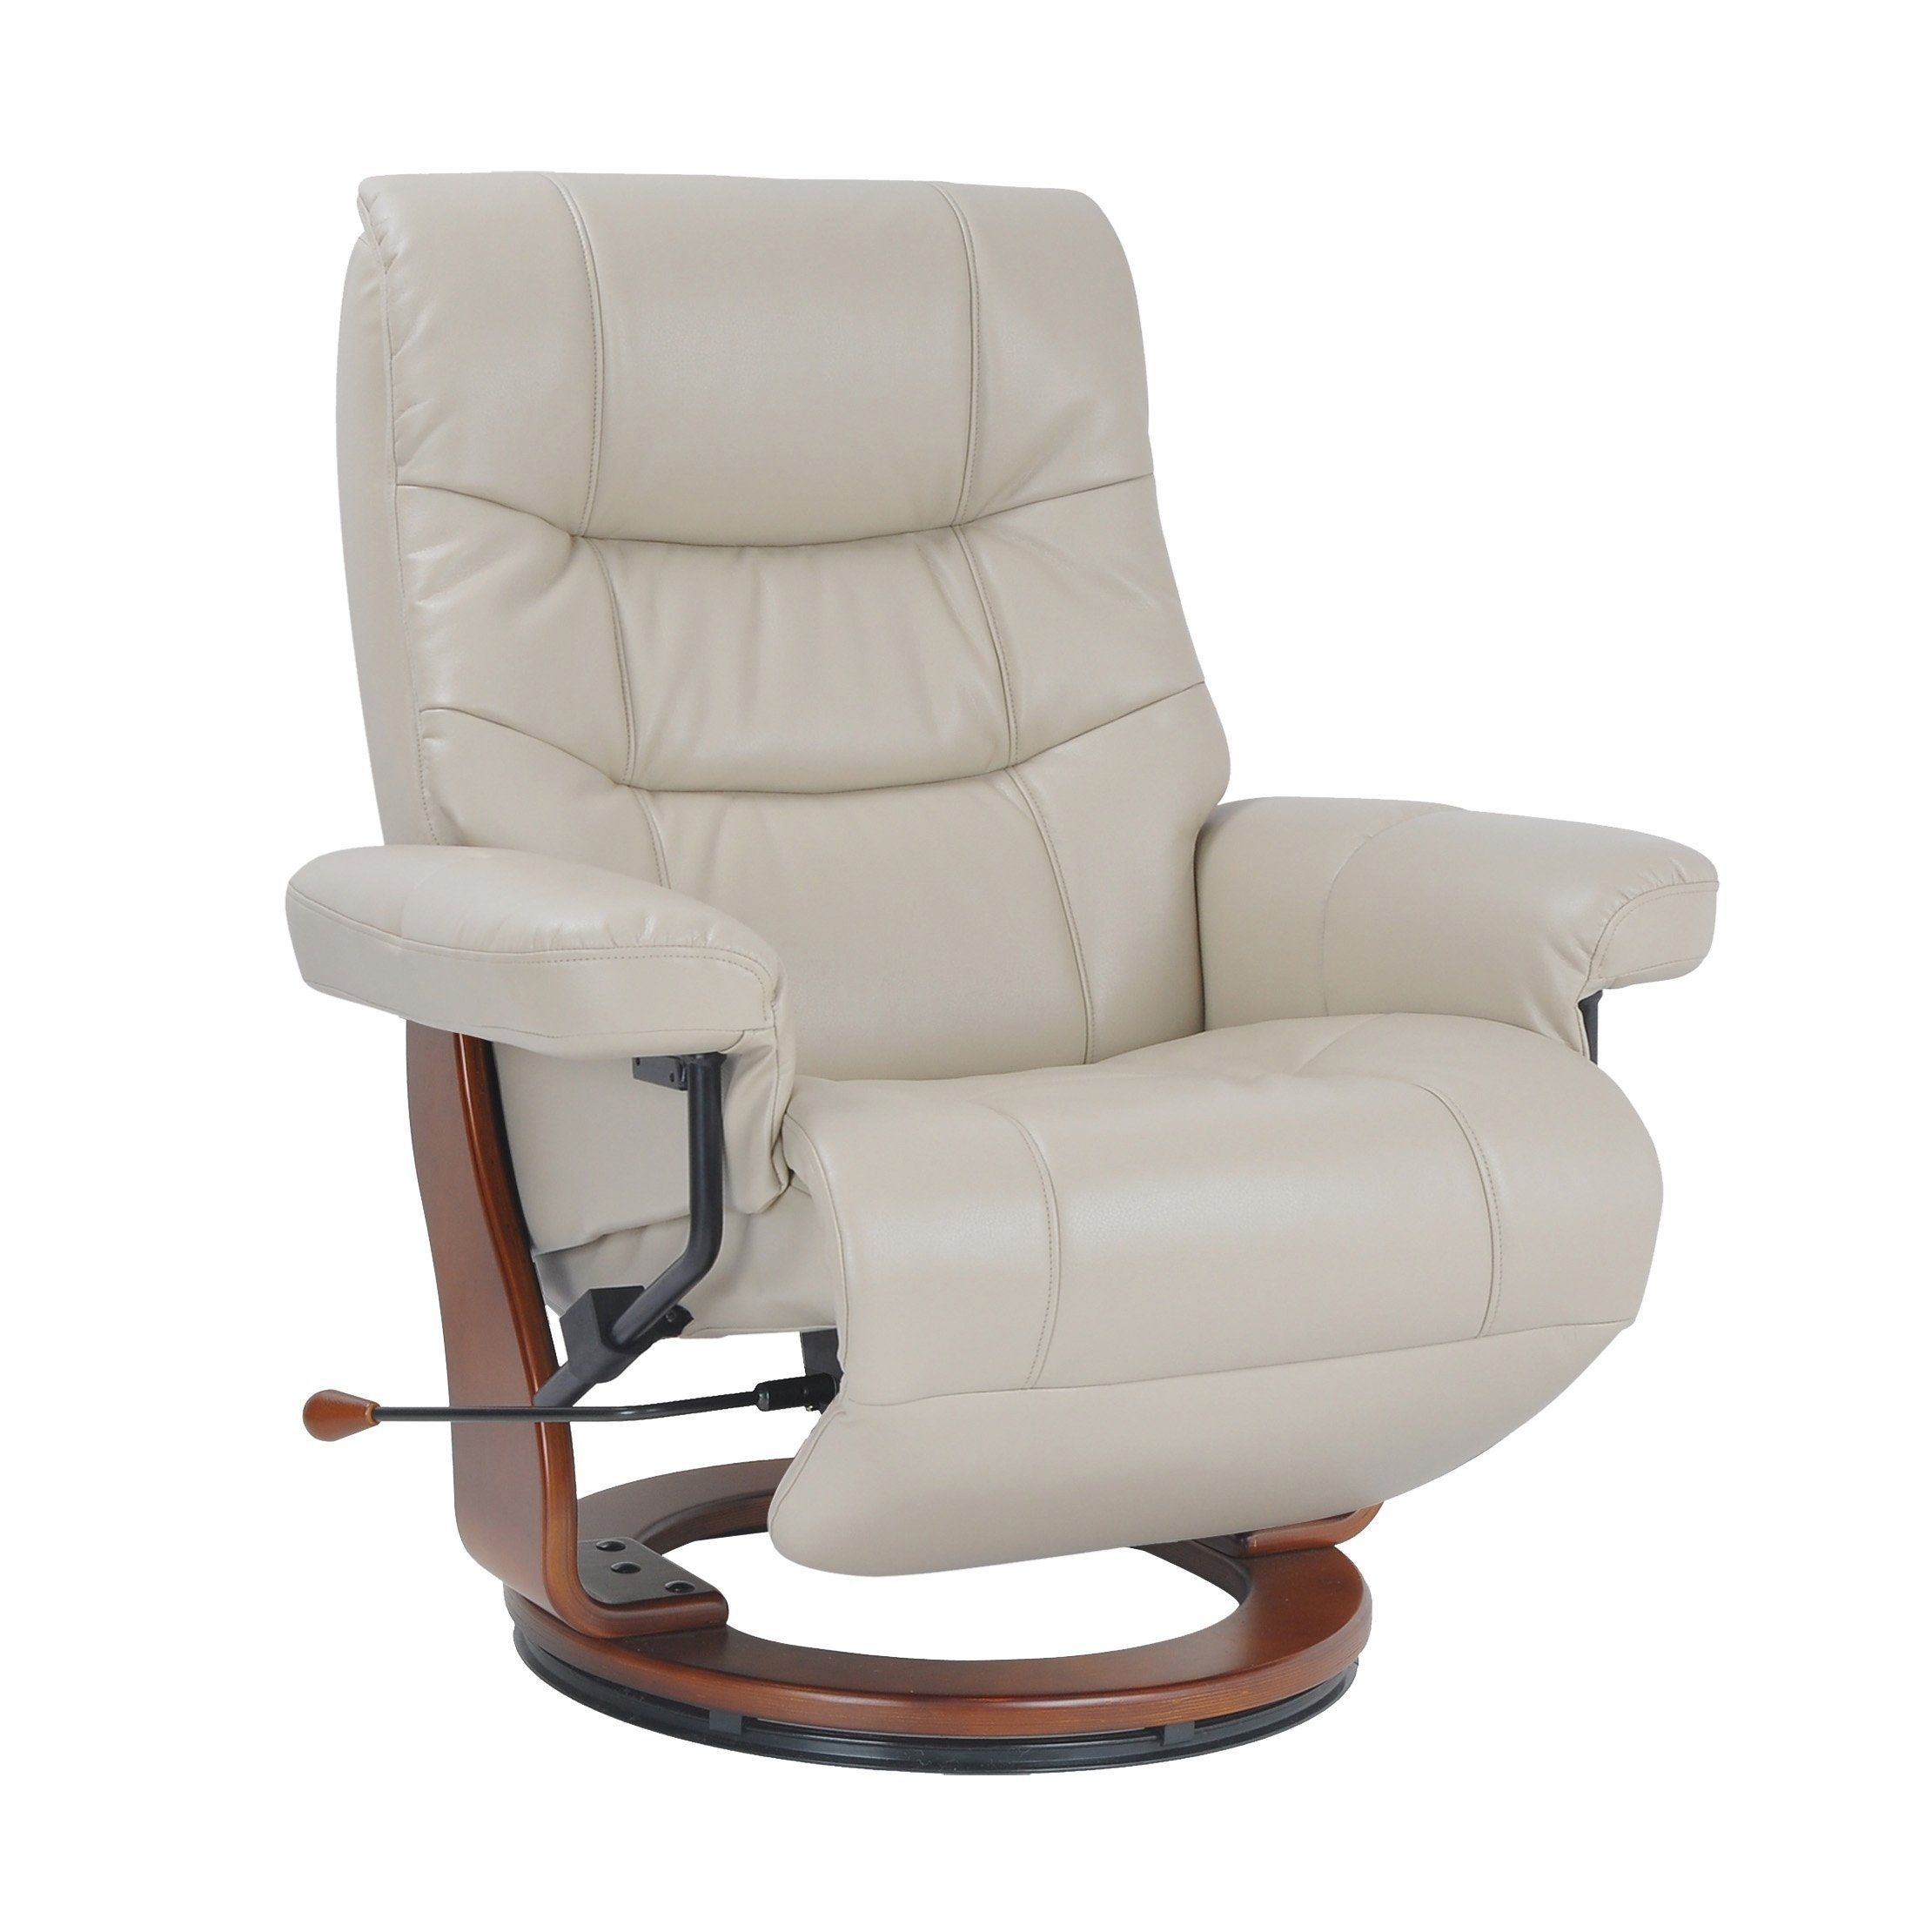 Online Shopping Bedding Furniture Electronics Jewelry Clothing More Swivel Recliner Recliner With Ottoman Recliner